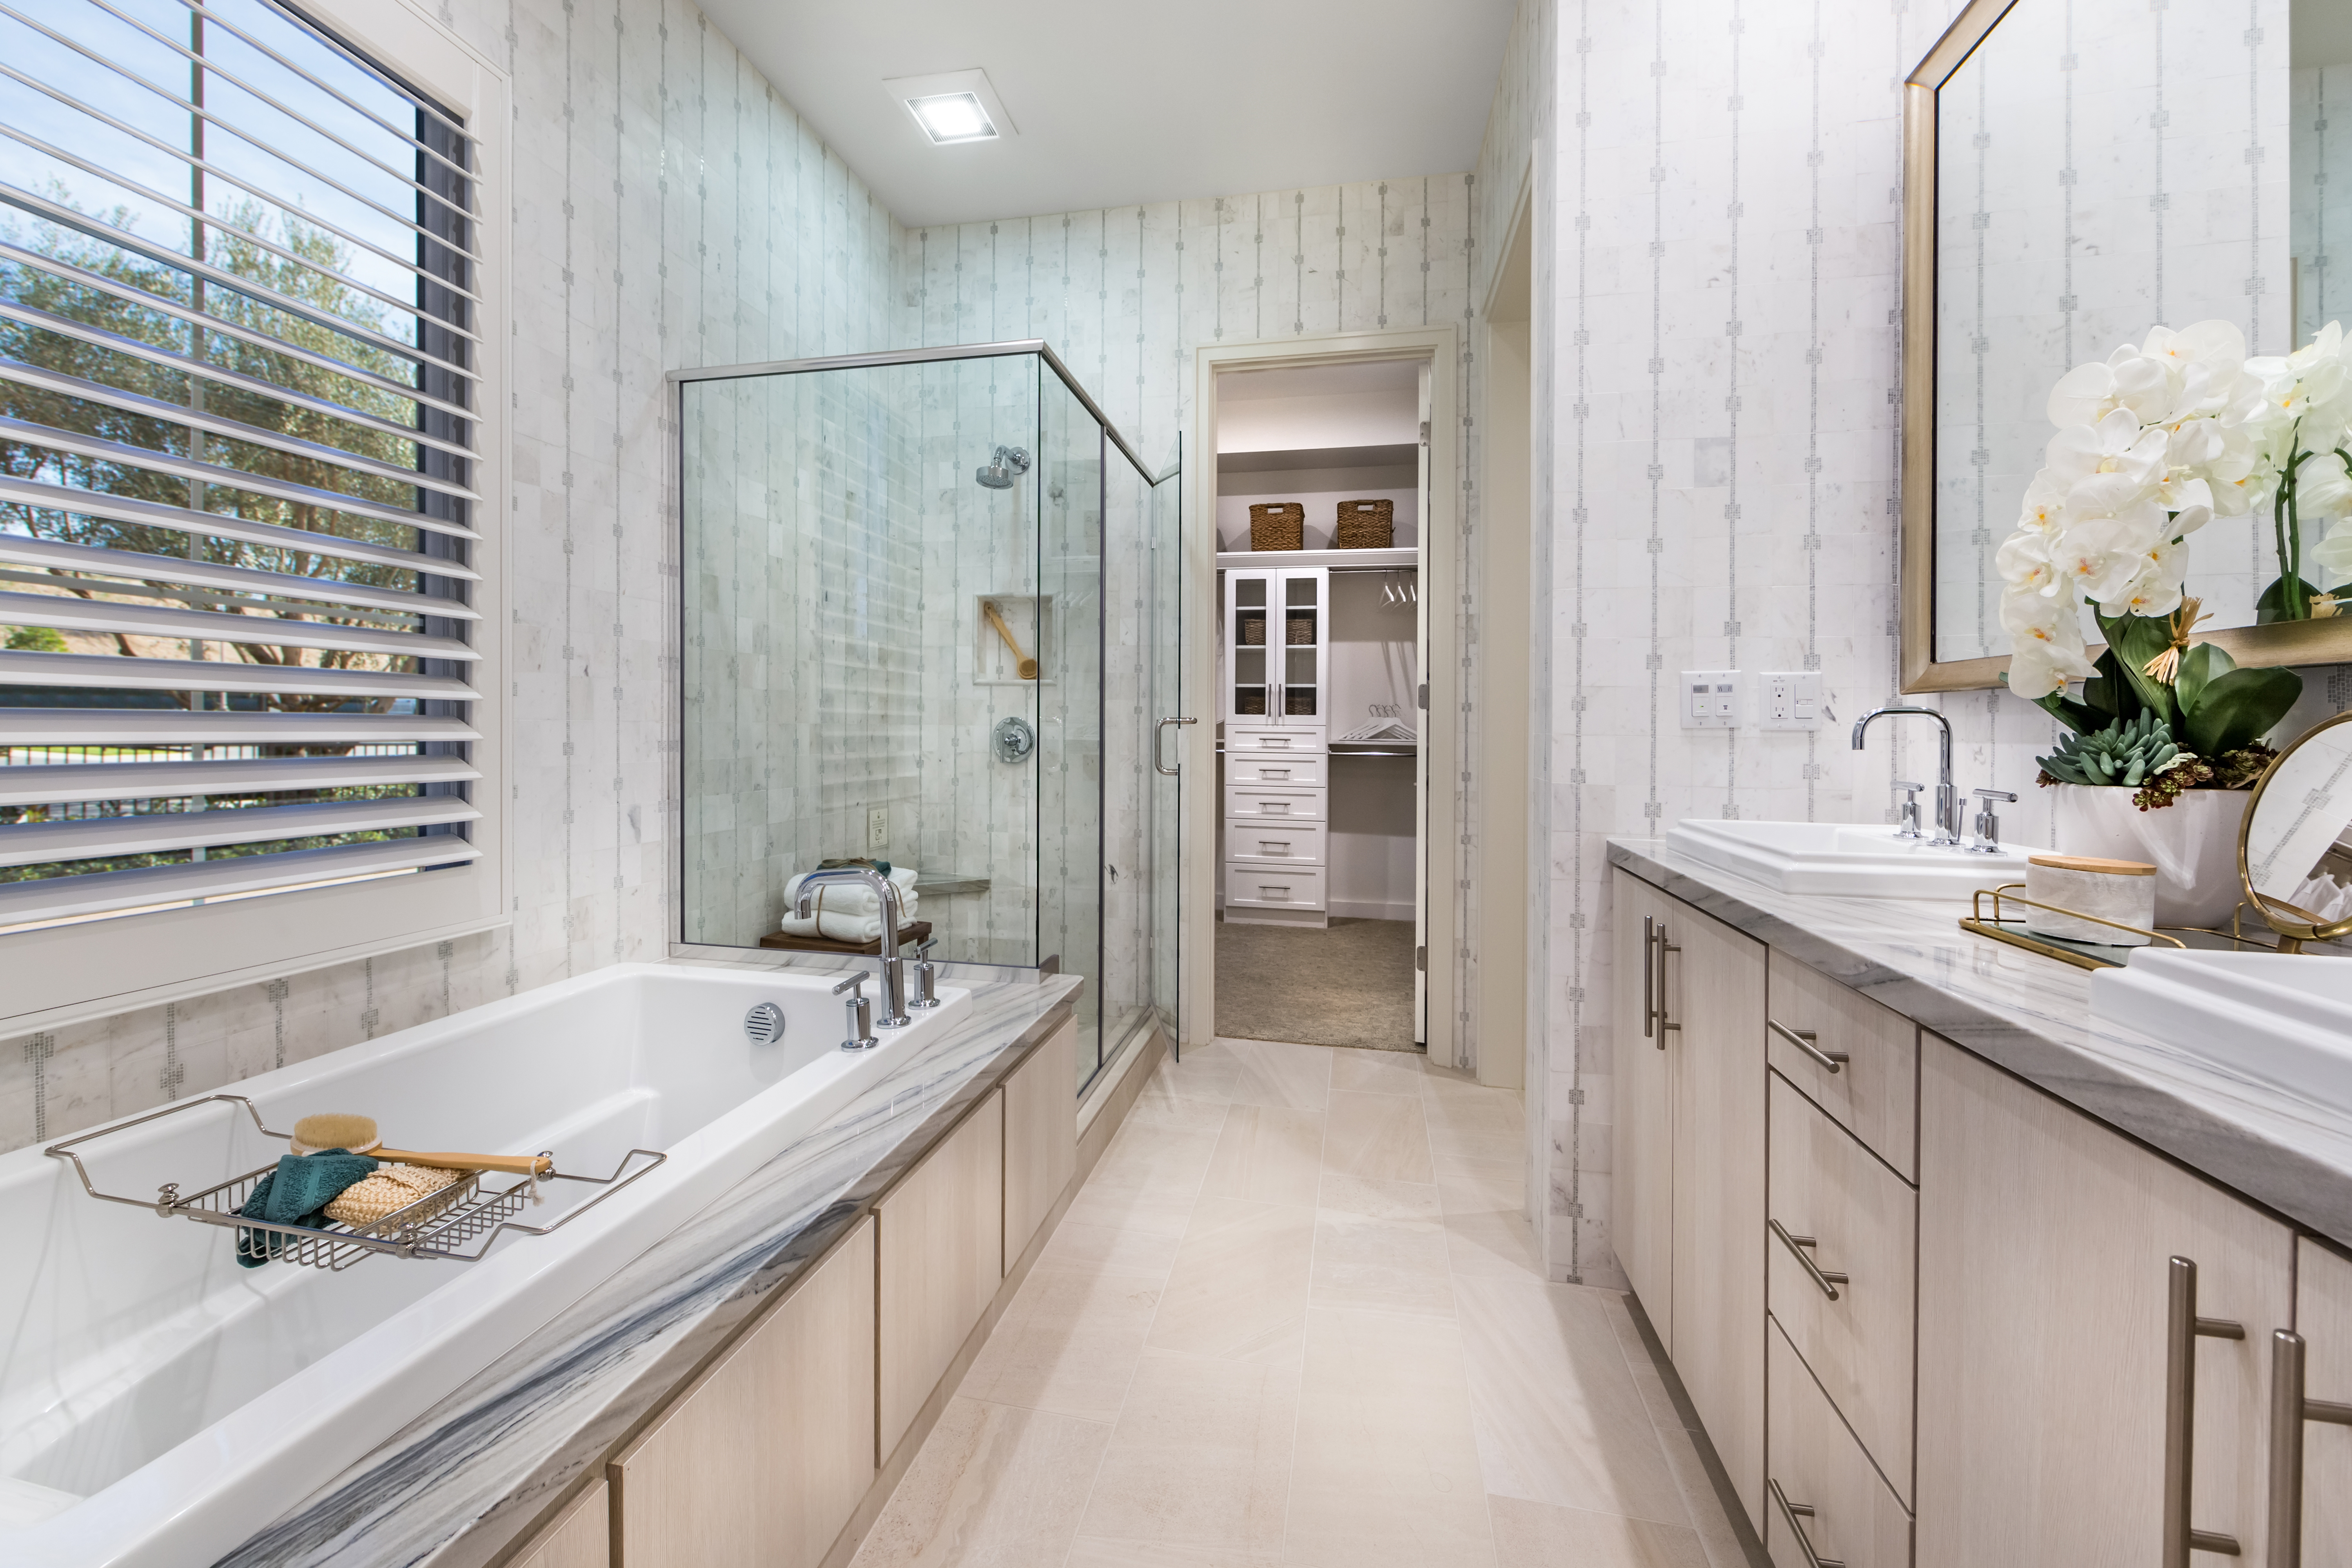 Master Bathroom at Verdi Residence 1 in Irvine